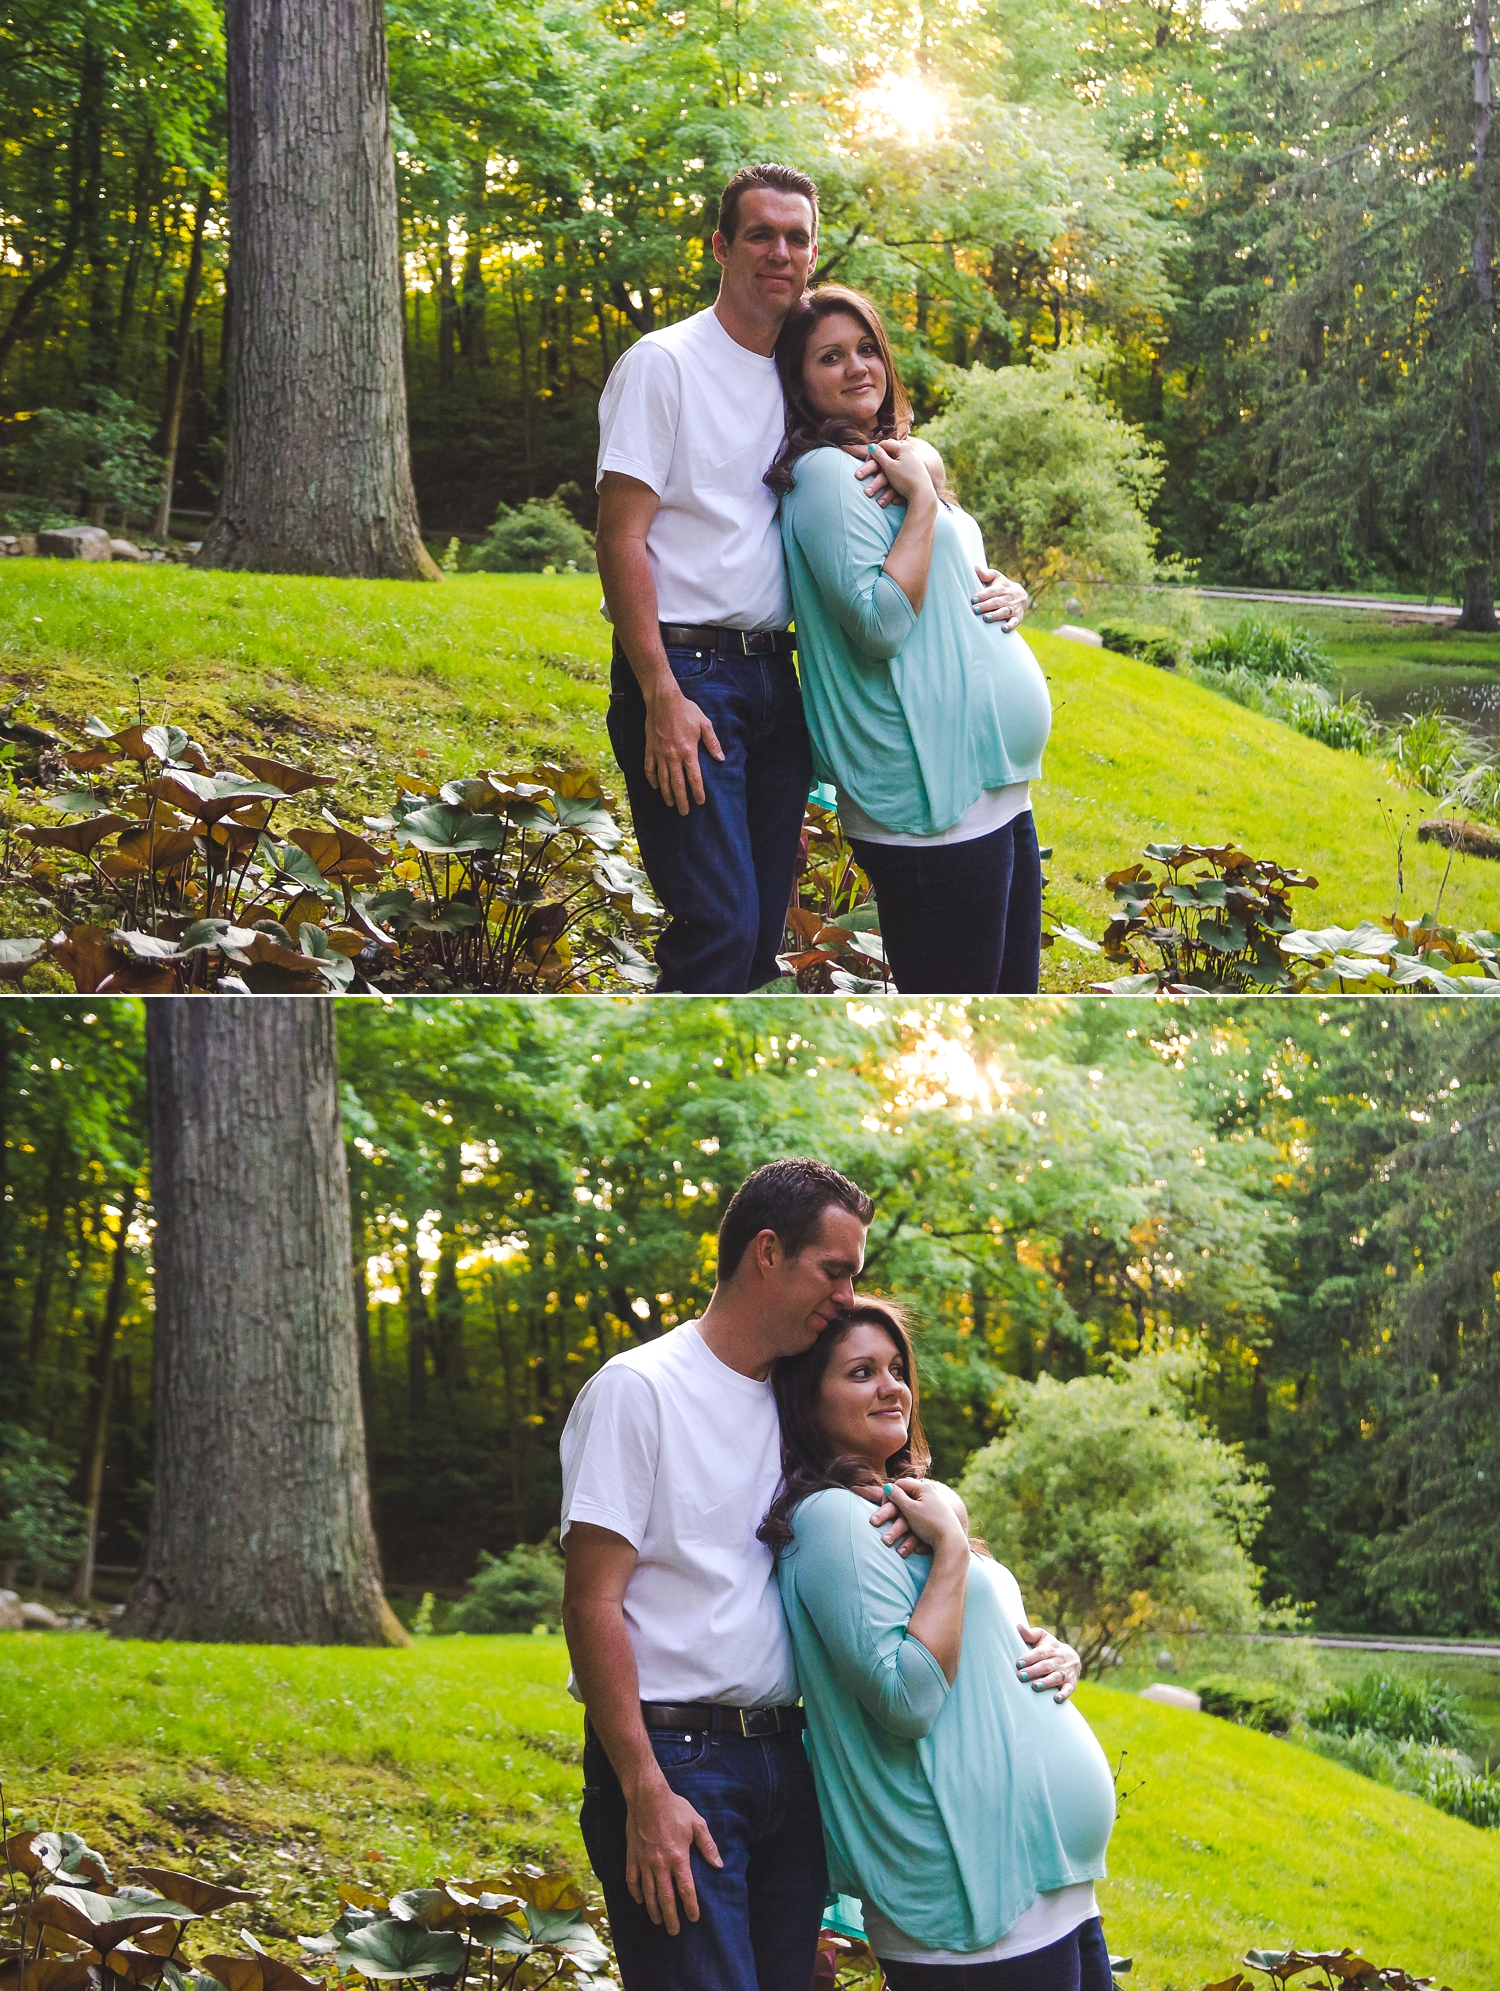 A couple embraces during their maternity session.